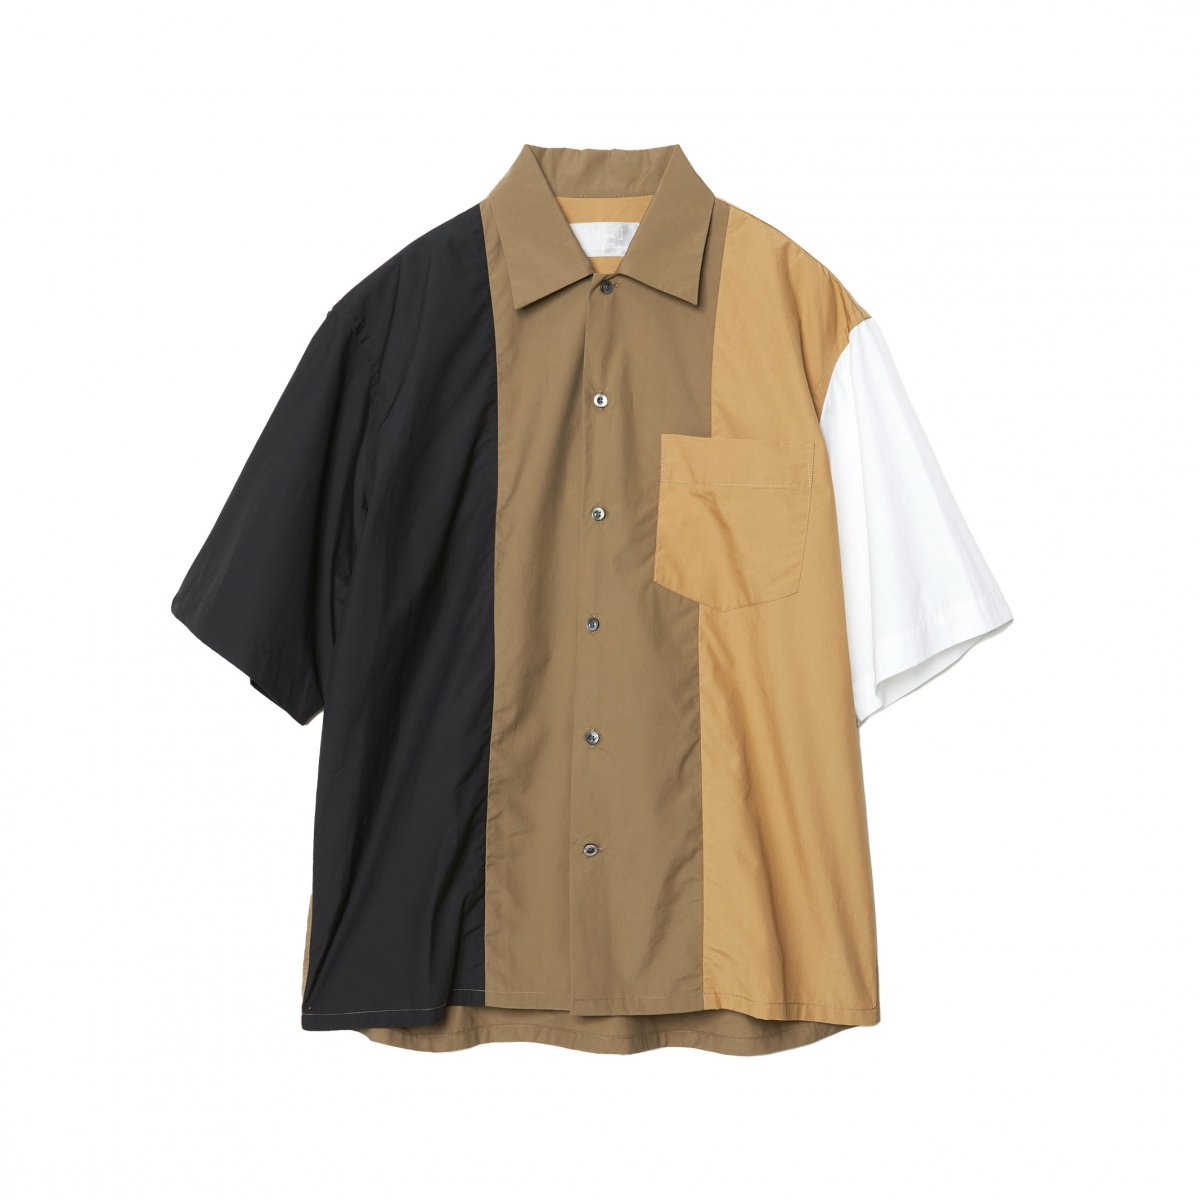 <img class='new_mark_img1' src='https://img.shop-pro.jp/img/new/icons5.gif' style='border:none;display:inline;margin:0px;padding:0px;width:auto;' />GIZA SUPIMA COTTON SHORT SLEEVE SHIRT / MULTI